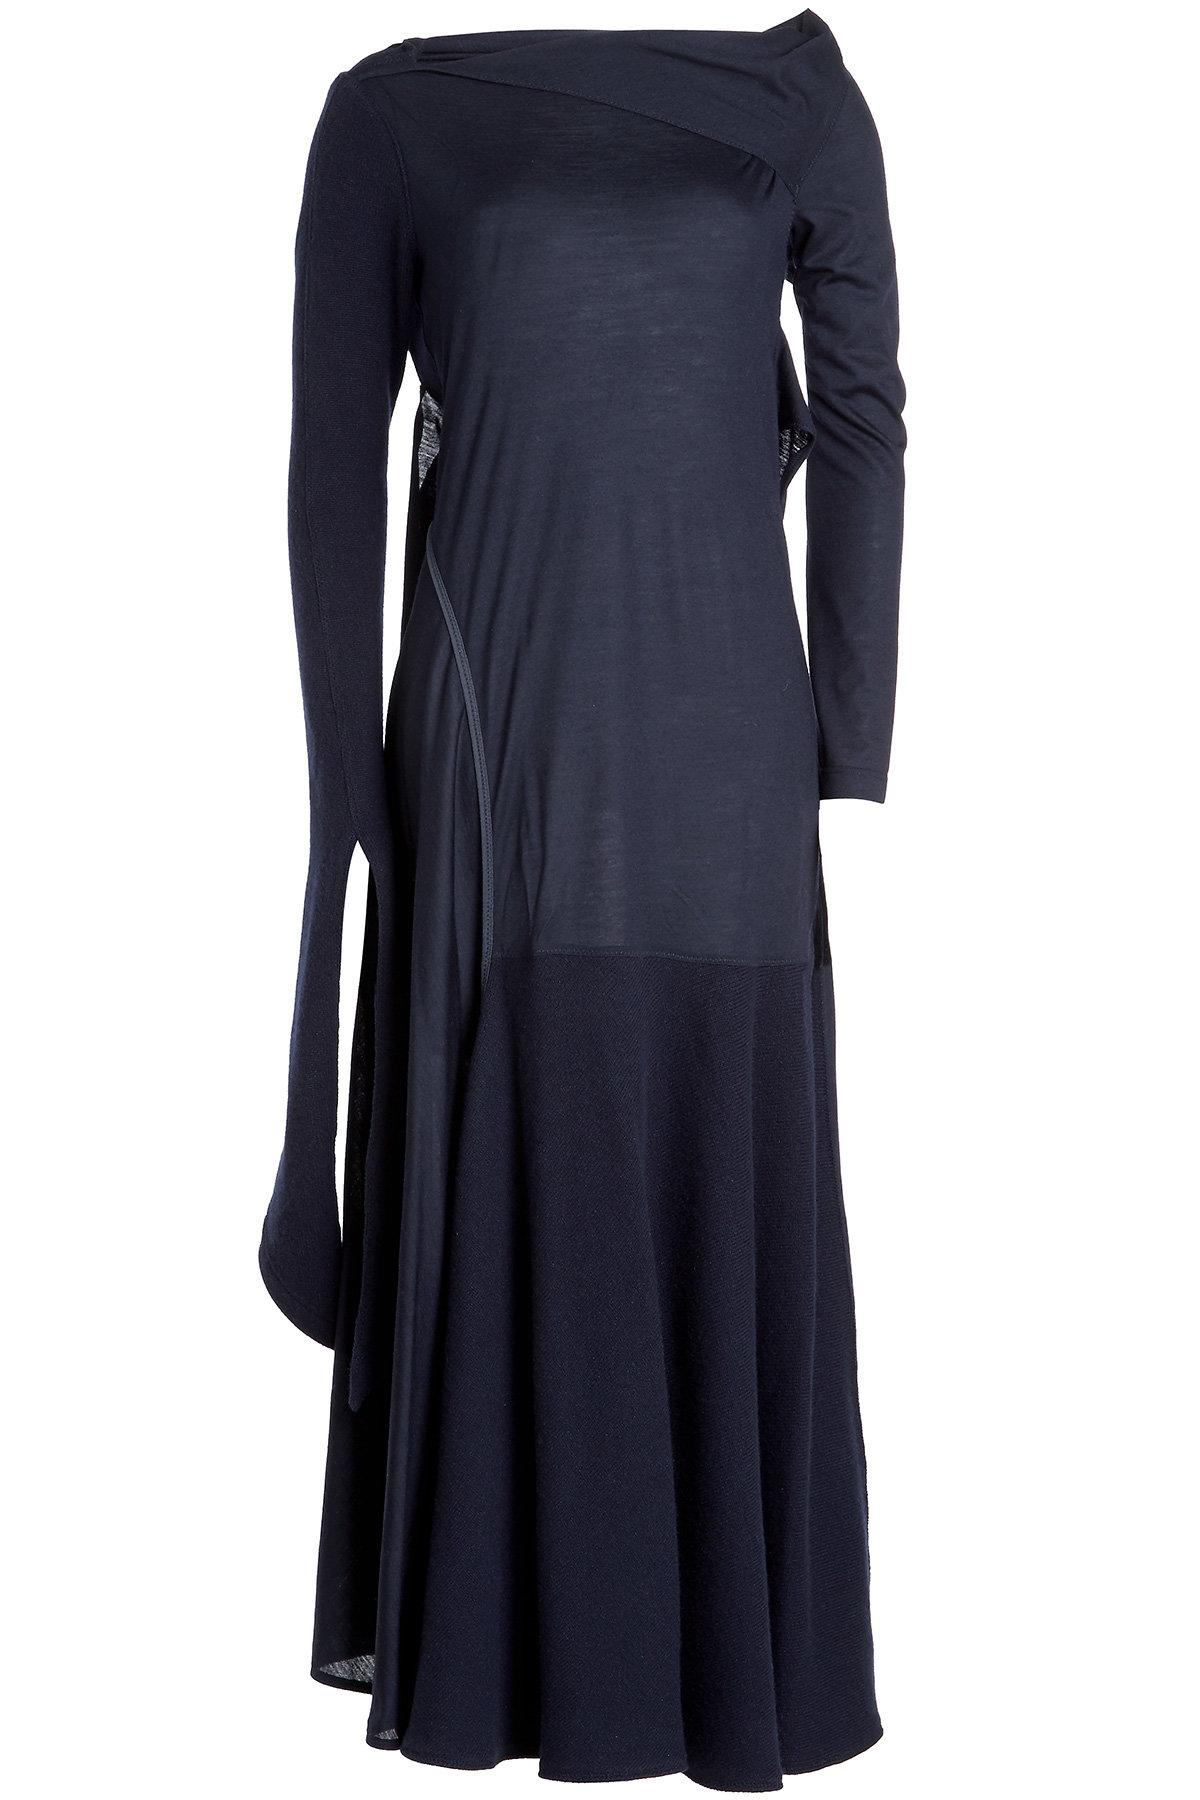 Victoria Beckham Asymmetric Virgin Wool Dress With Cashmere In Blue